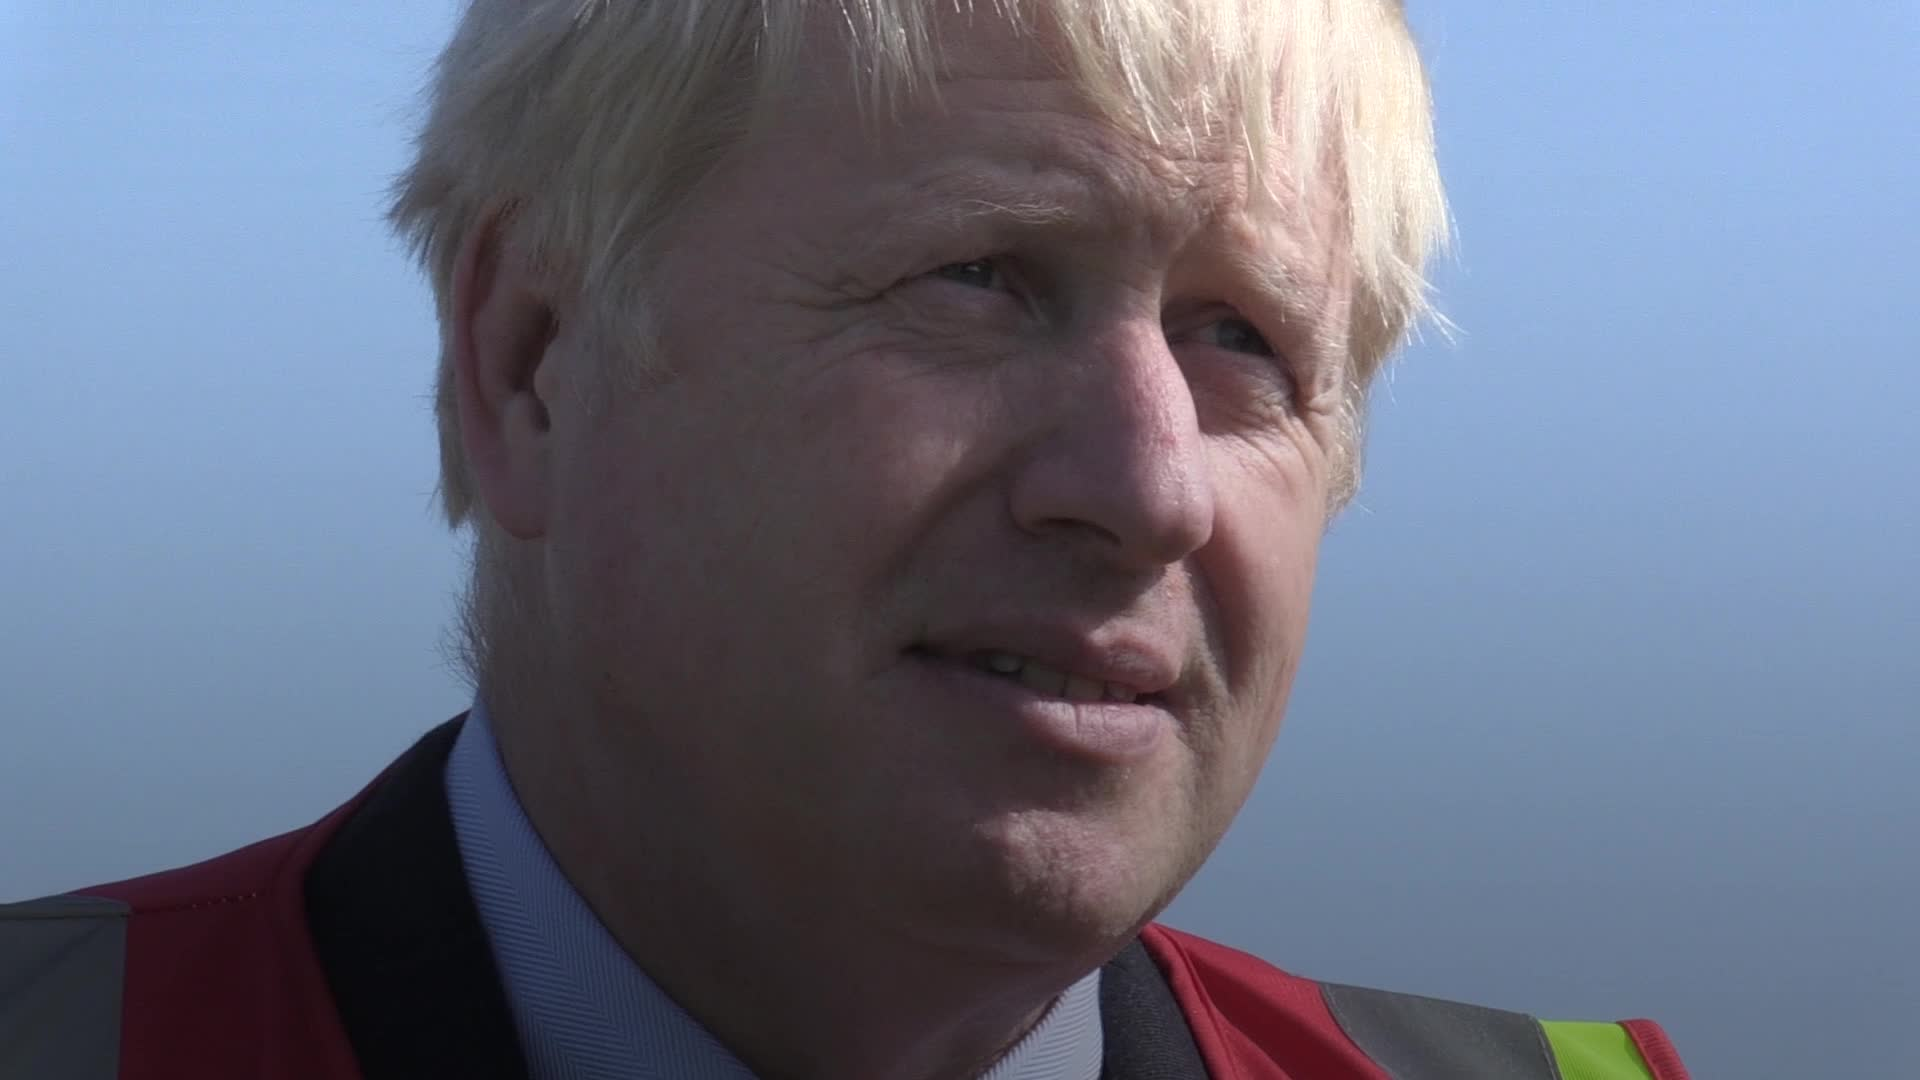 Boris Johnson Signals He Will Ban Live Animal Exports If He Is Prime Minister